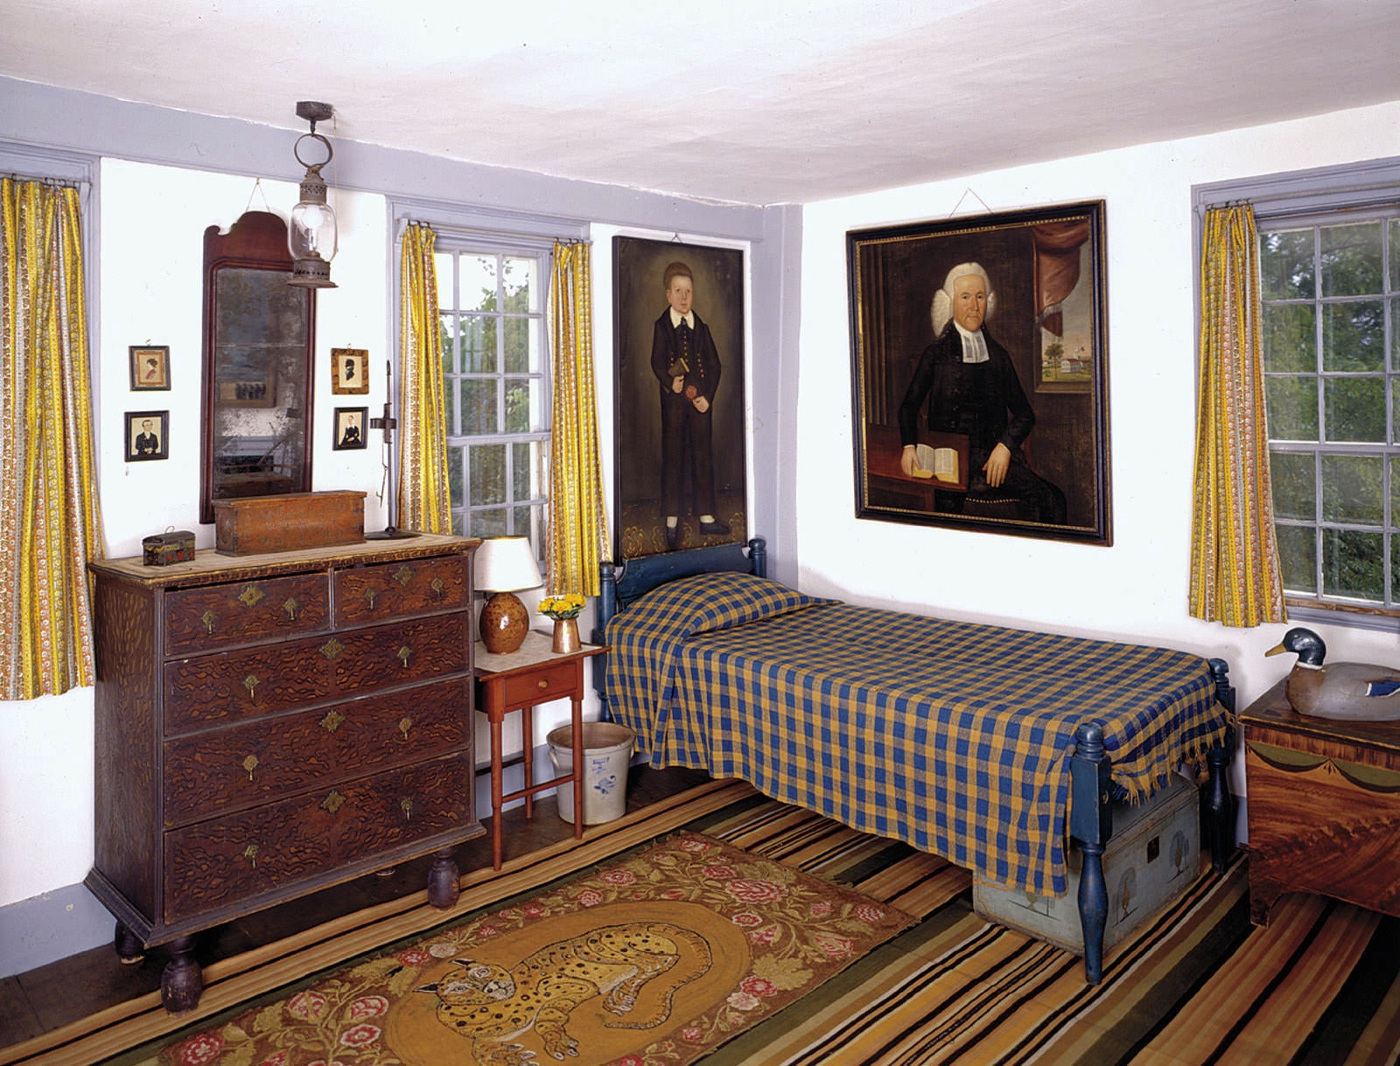 Cogswell 39 s grant an historic new england property offers for Early new england homes